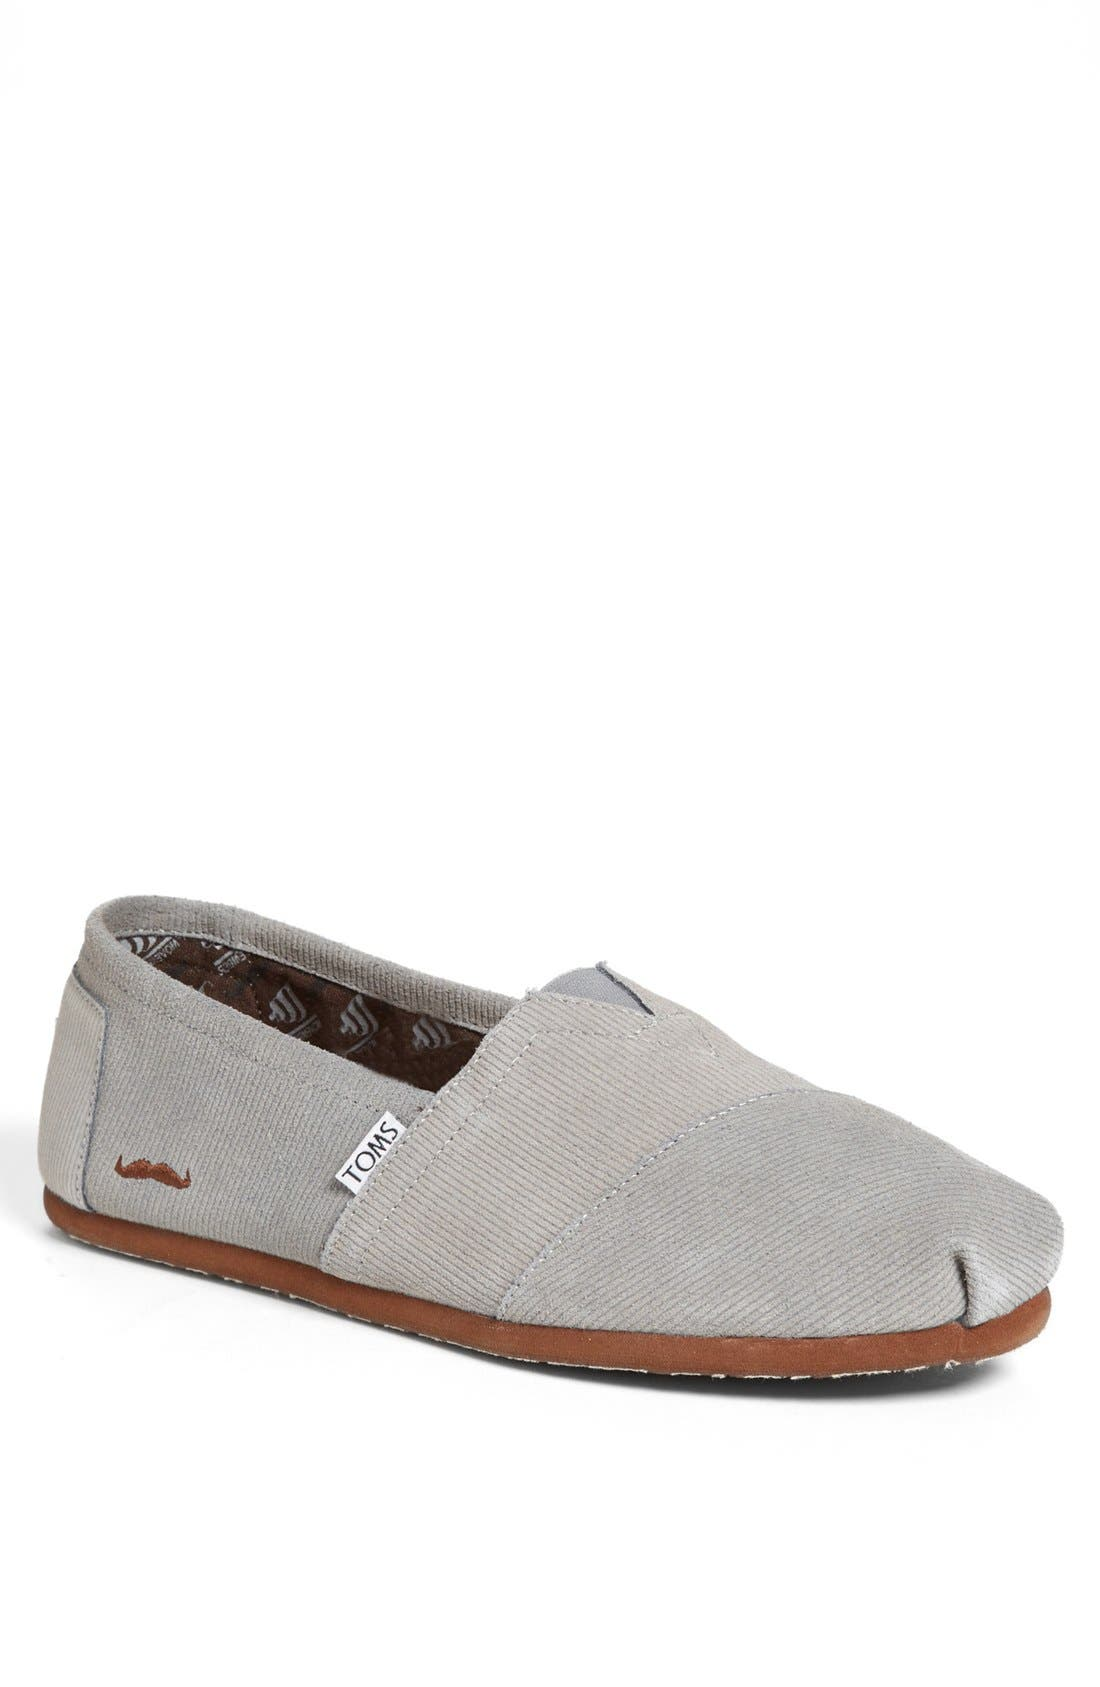 Alternate Image 1 Selected - TOMS 'Movember Classic' Slip-On (Men) (Limited Edition - Movember)